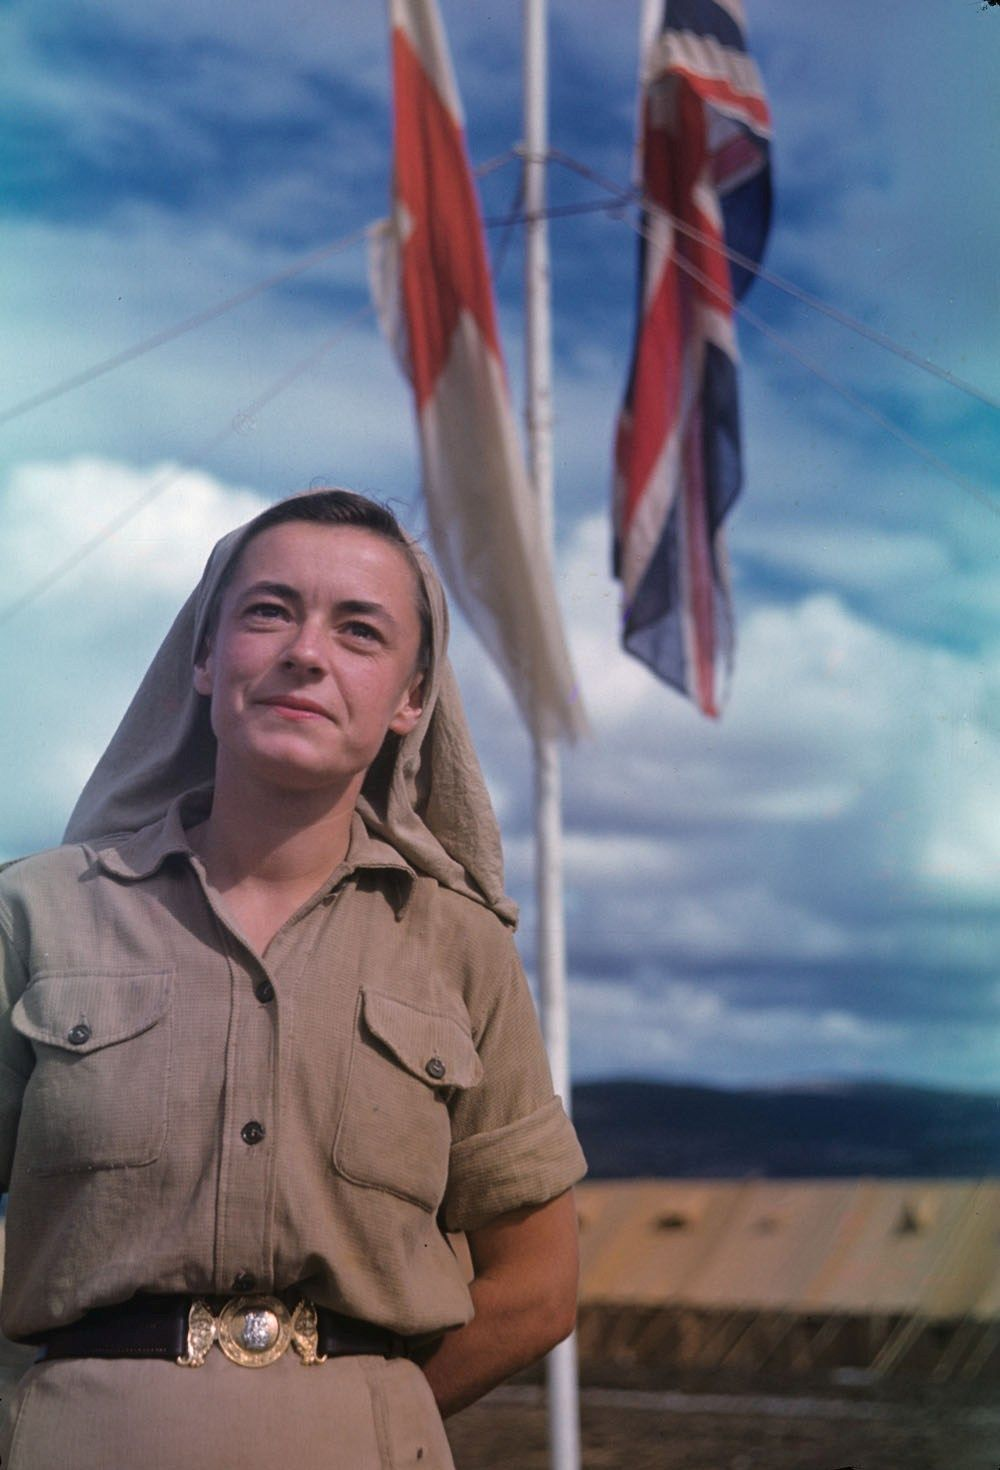 Canadian Army nurse Valerie Hoare poses outside field Hospital in North Africa, 1942.